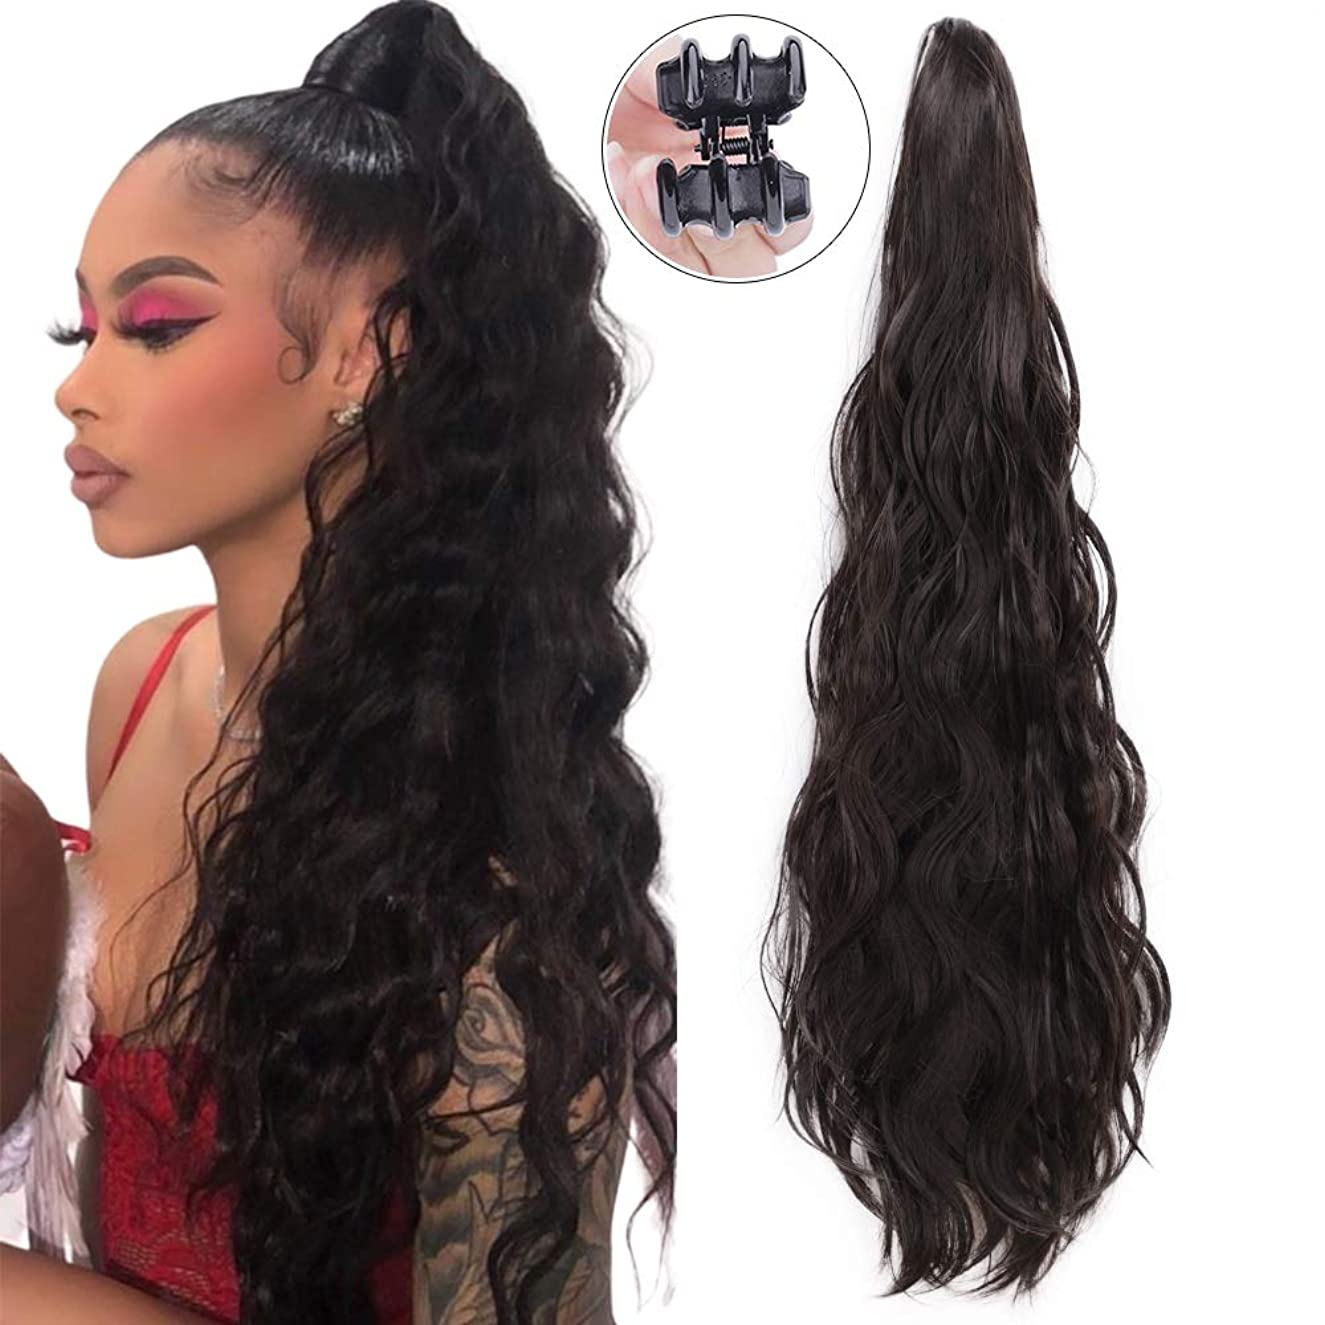 24 Inch Long Curly Wavy Ponytail Extension Synthetic Curly Ponytail Clip in Claw Ponytail Extensions for Women Natural Ponytail Drawstring Hair Hairpieces(4#)